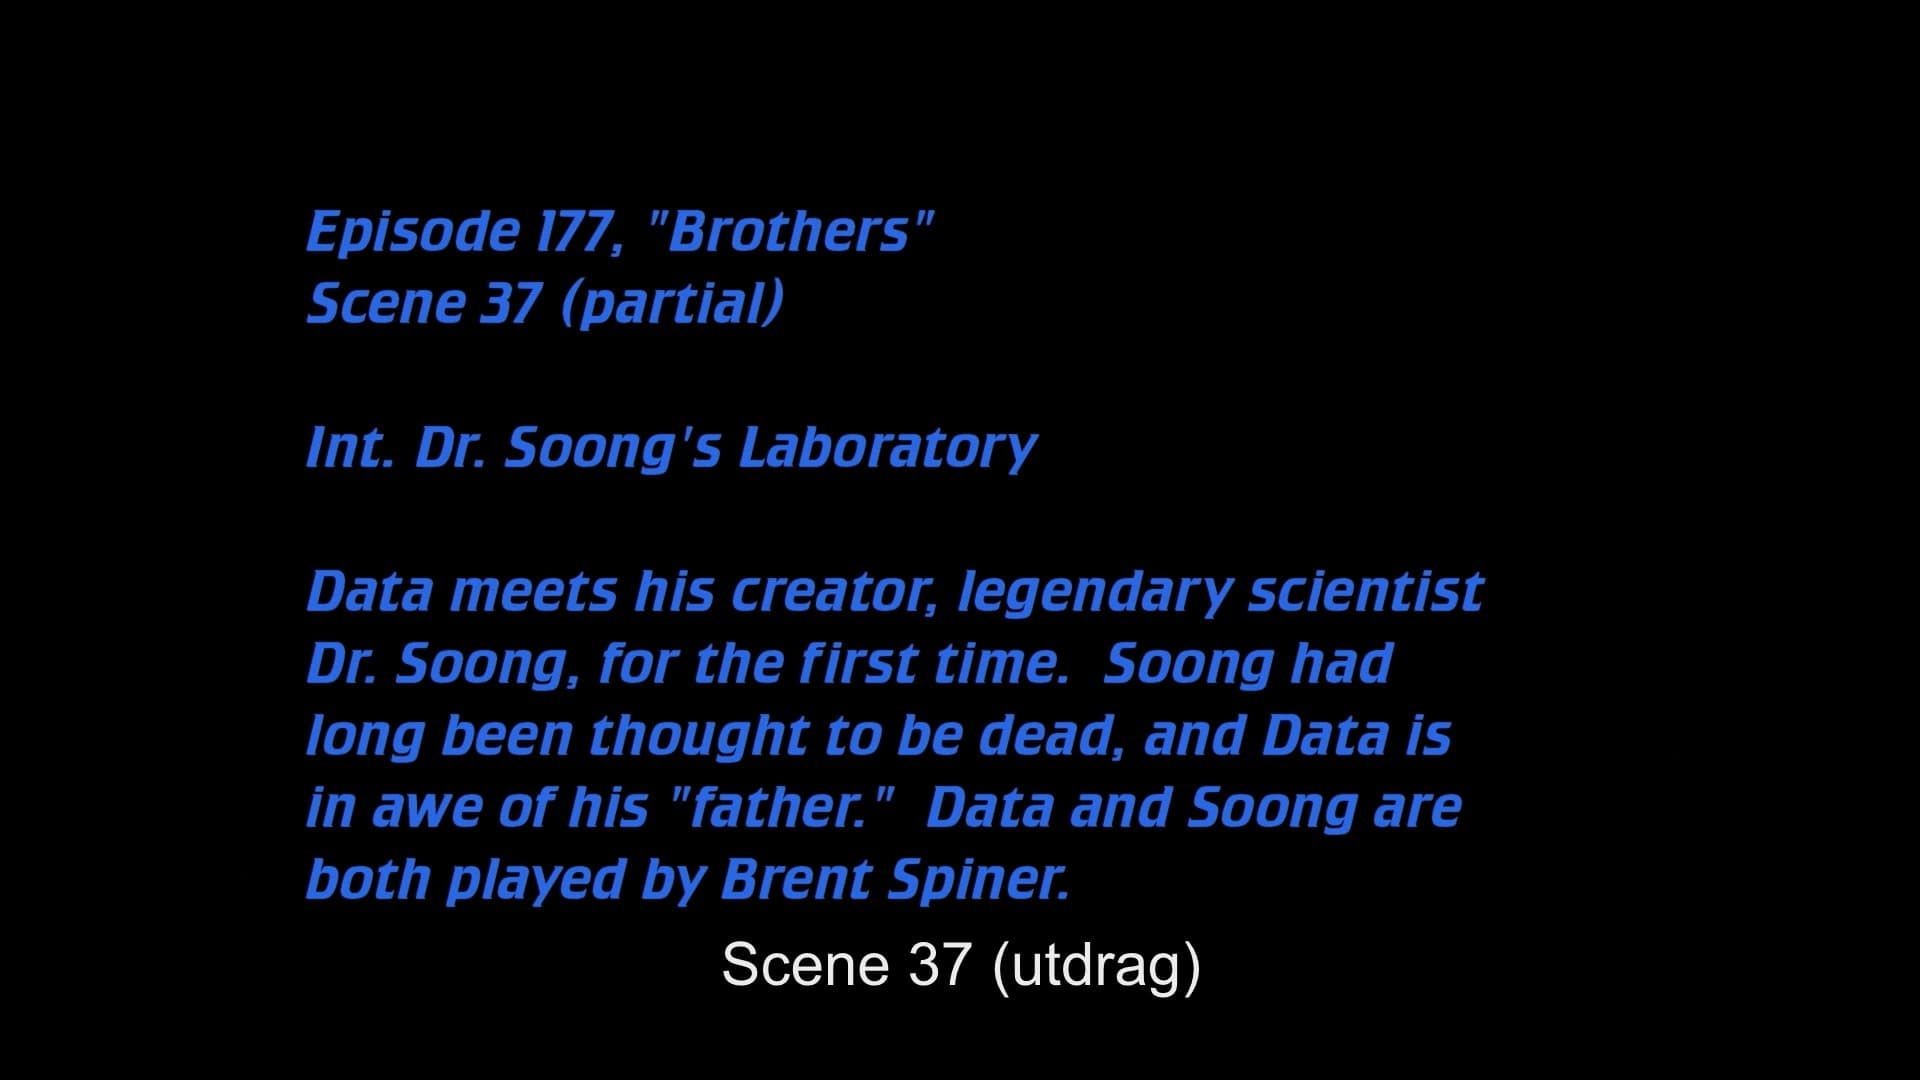 Deleted Scenes: S04E03 - Brothers-Azwaad Movie Database